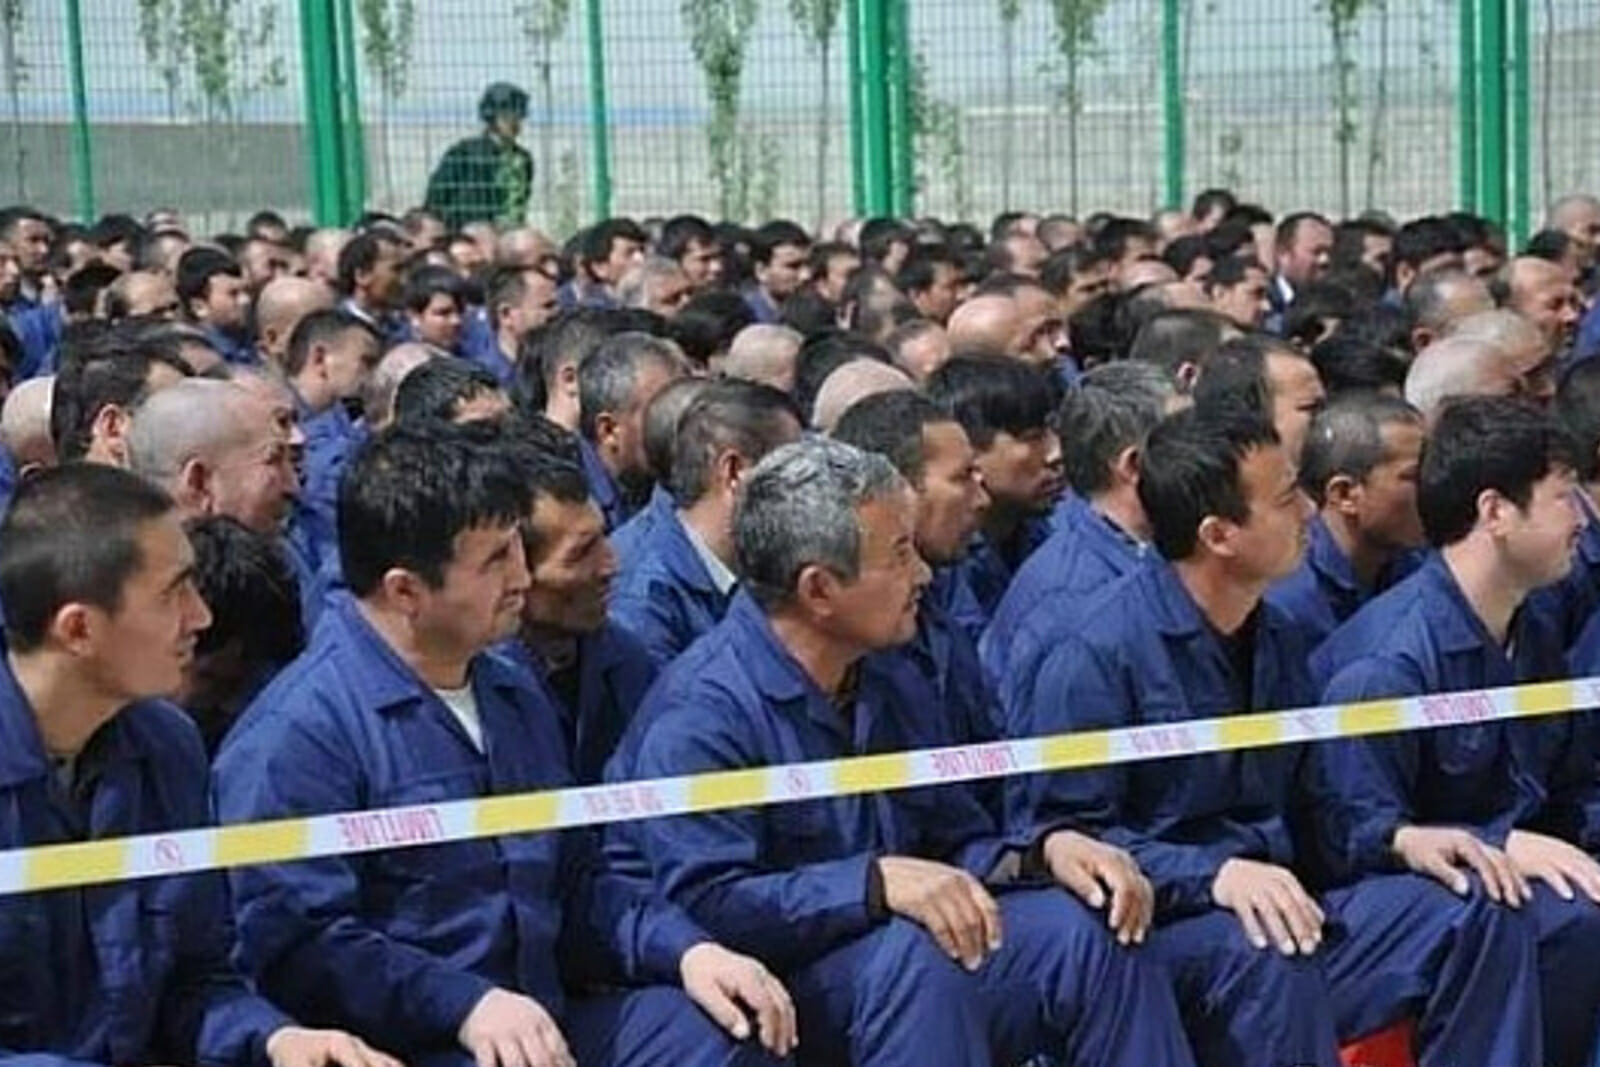 Chinese prison labour goods | Global Legal Action Network